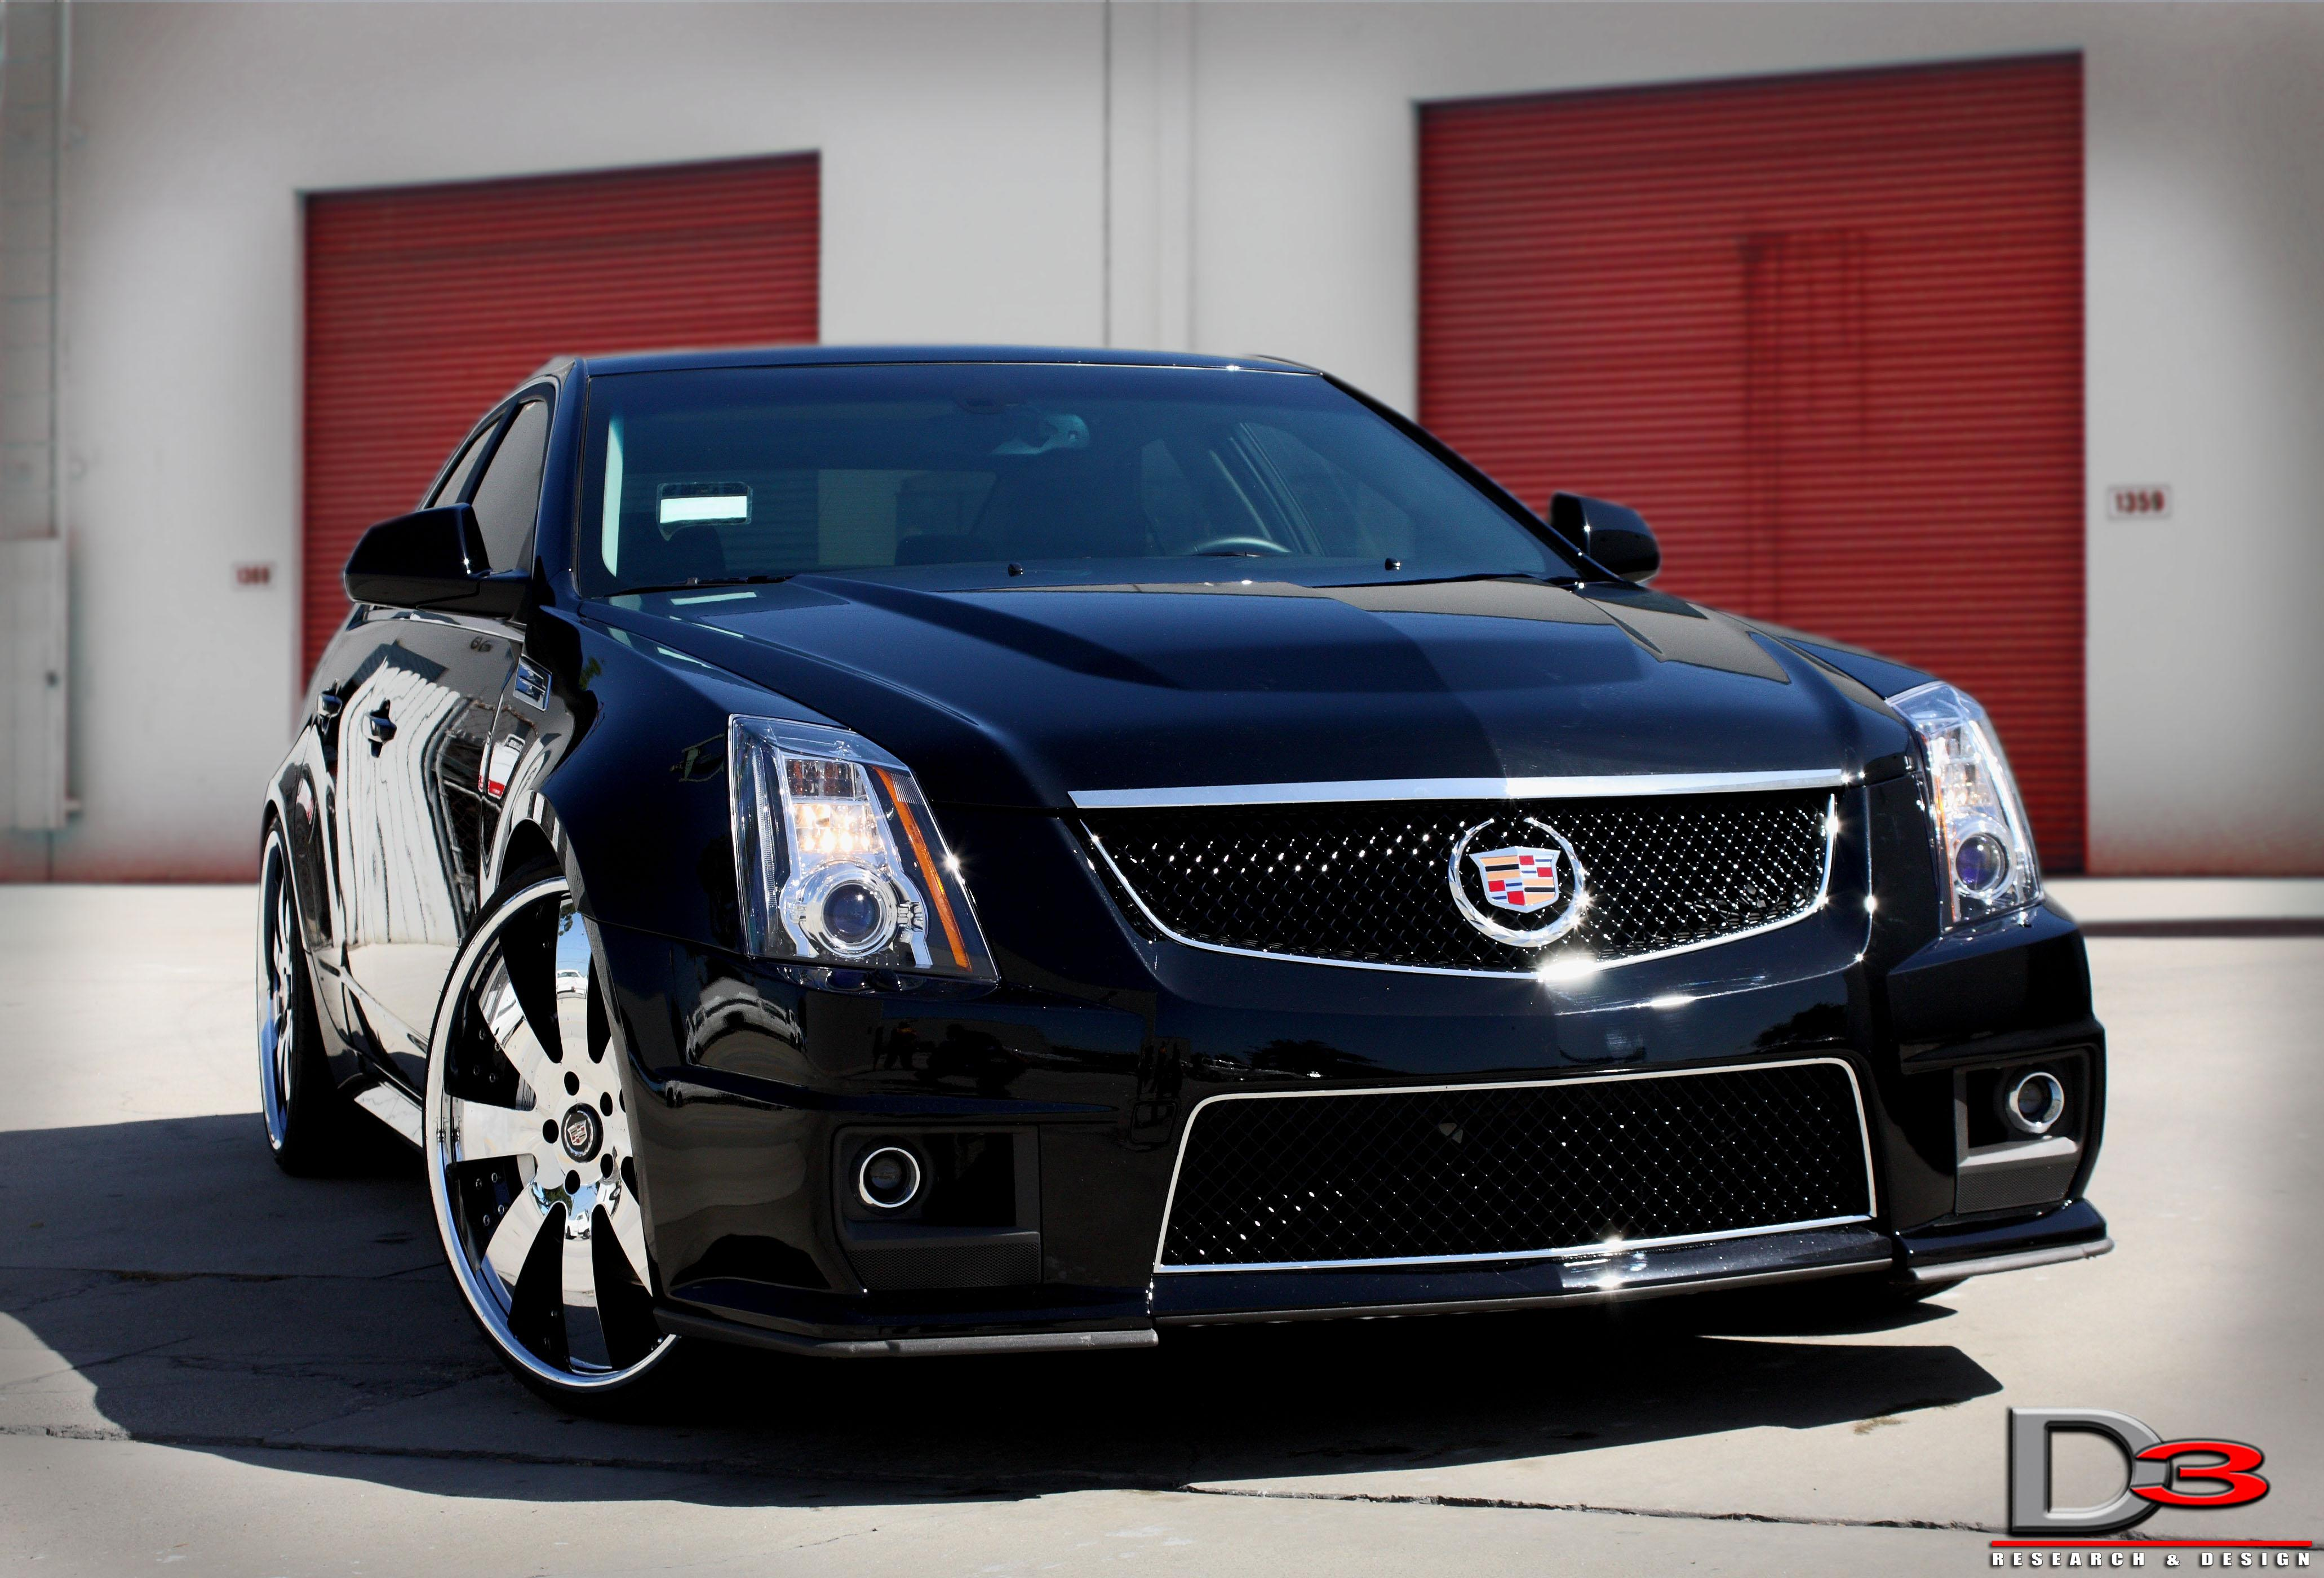 intl overview prices sedan performance cadillac price specs sts aa international